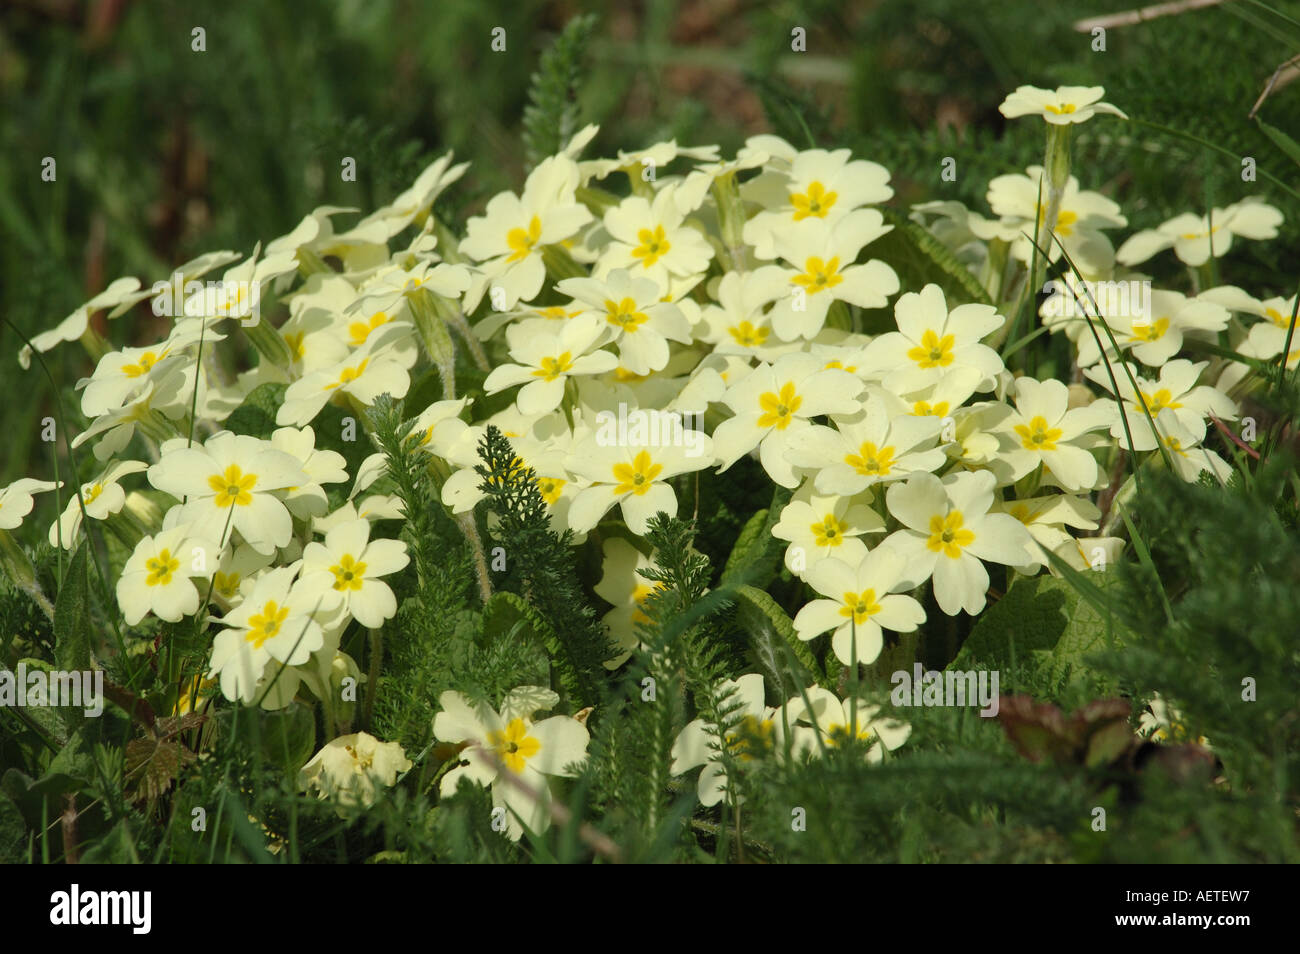 Pale yellow flowers of the primrose stock photo 7858966 alamy pale yellow flowers of the primrose mightylinksfo